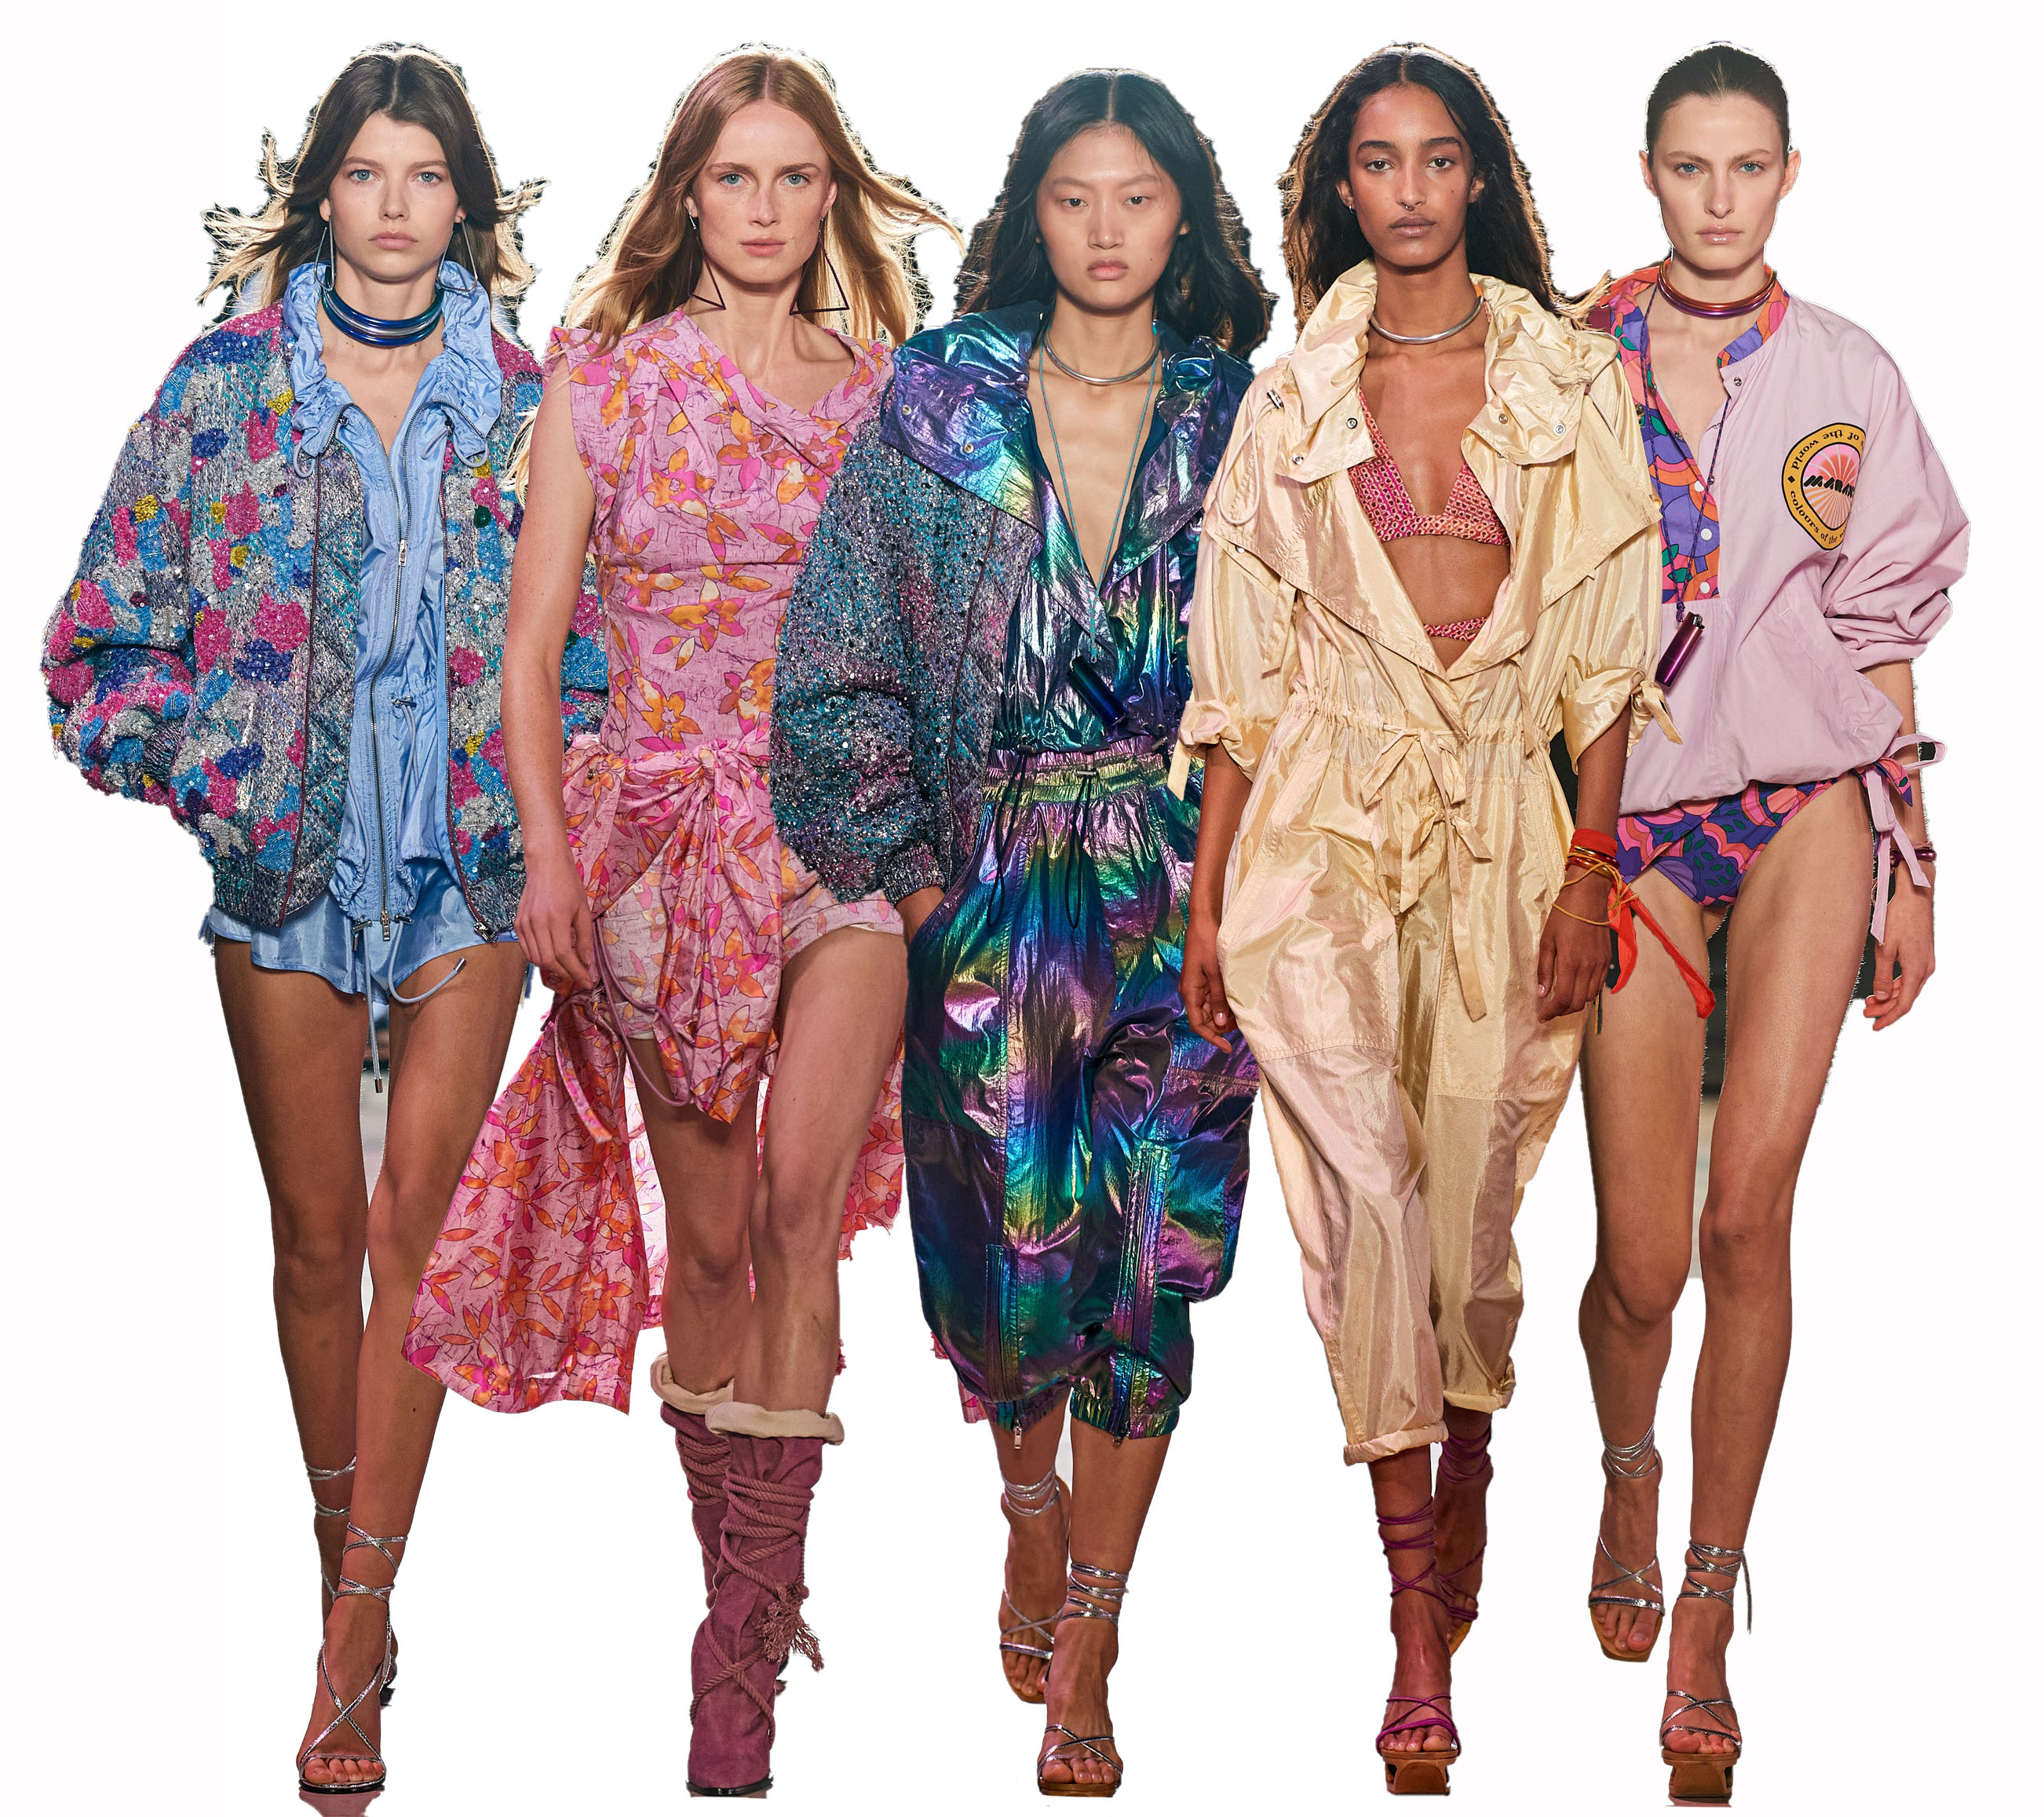 isabel-marant-spring-2022-collection